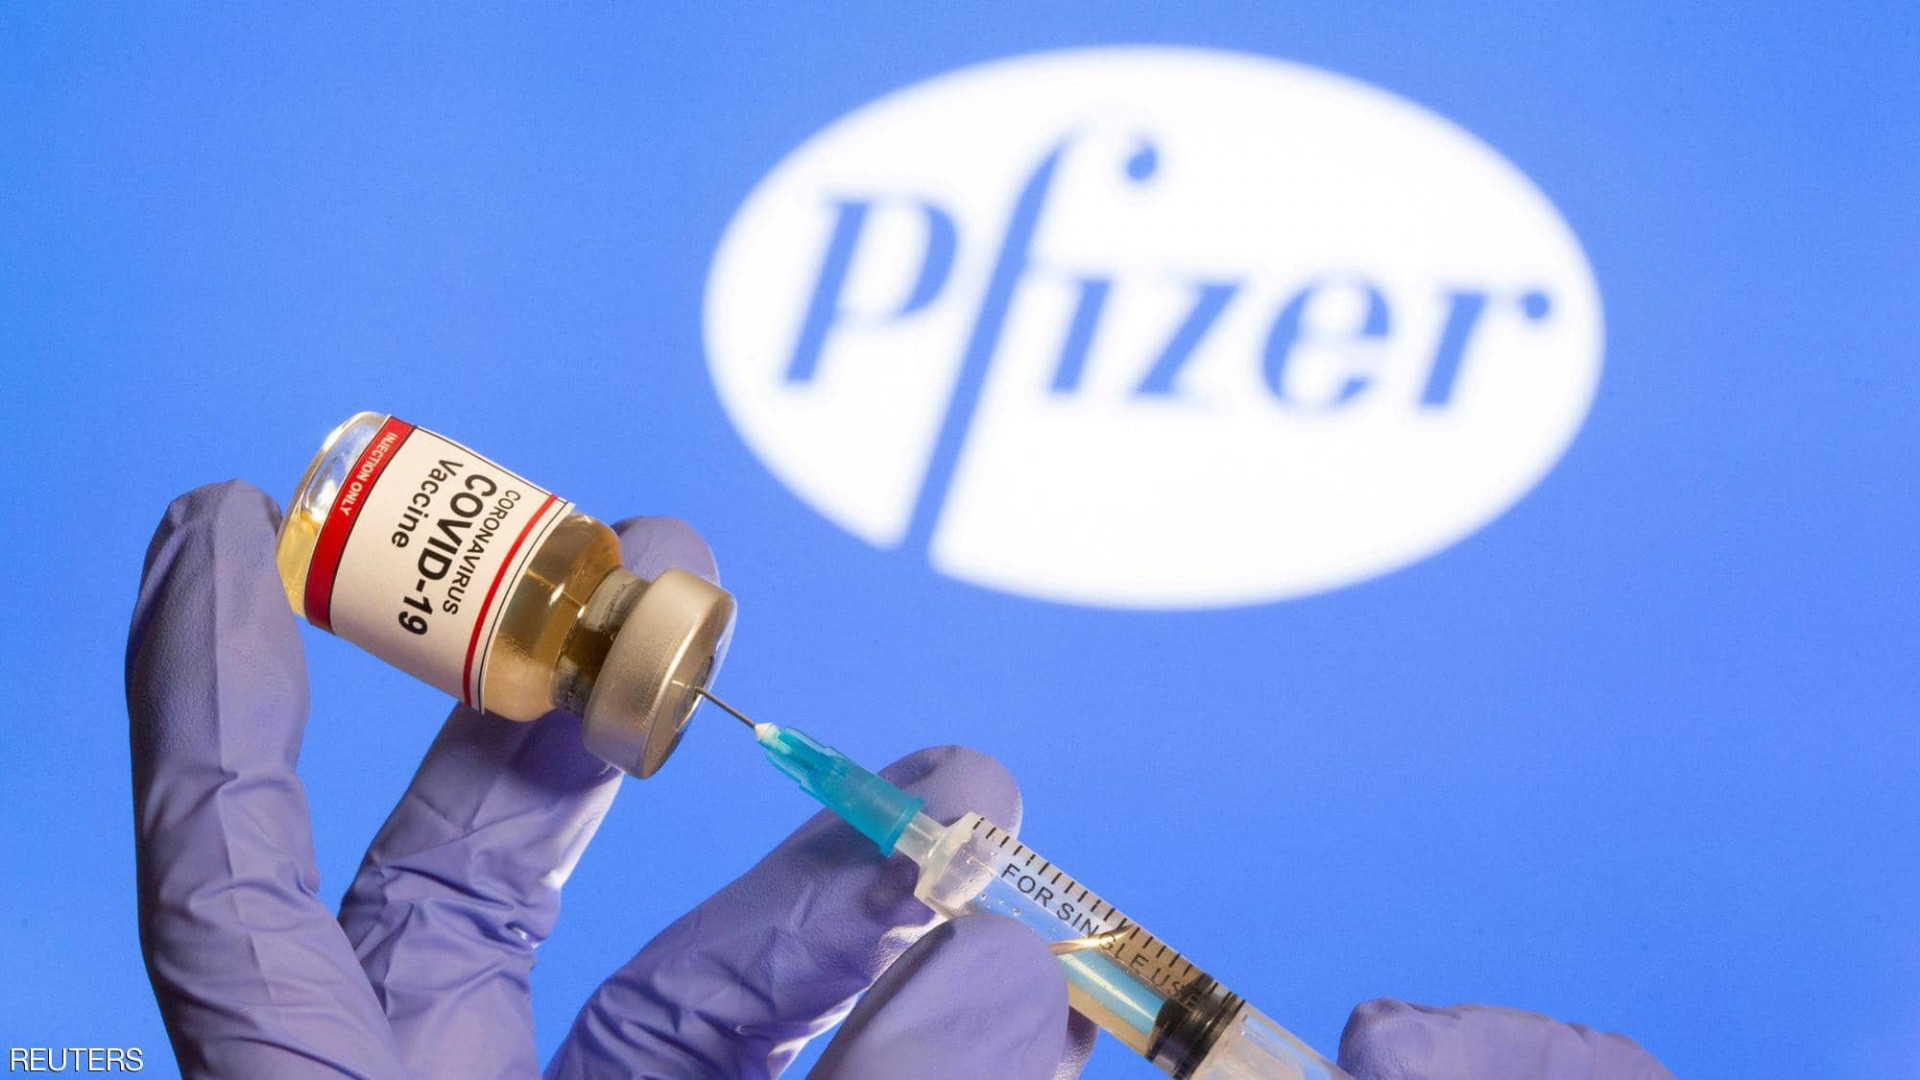 Pfizer's COVID-19 vaccine 95% effective in final results